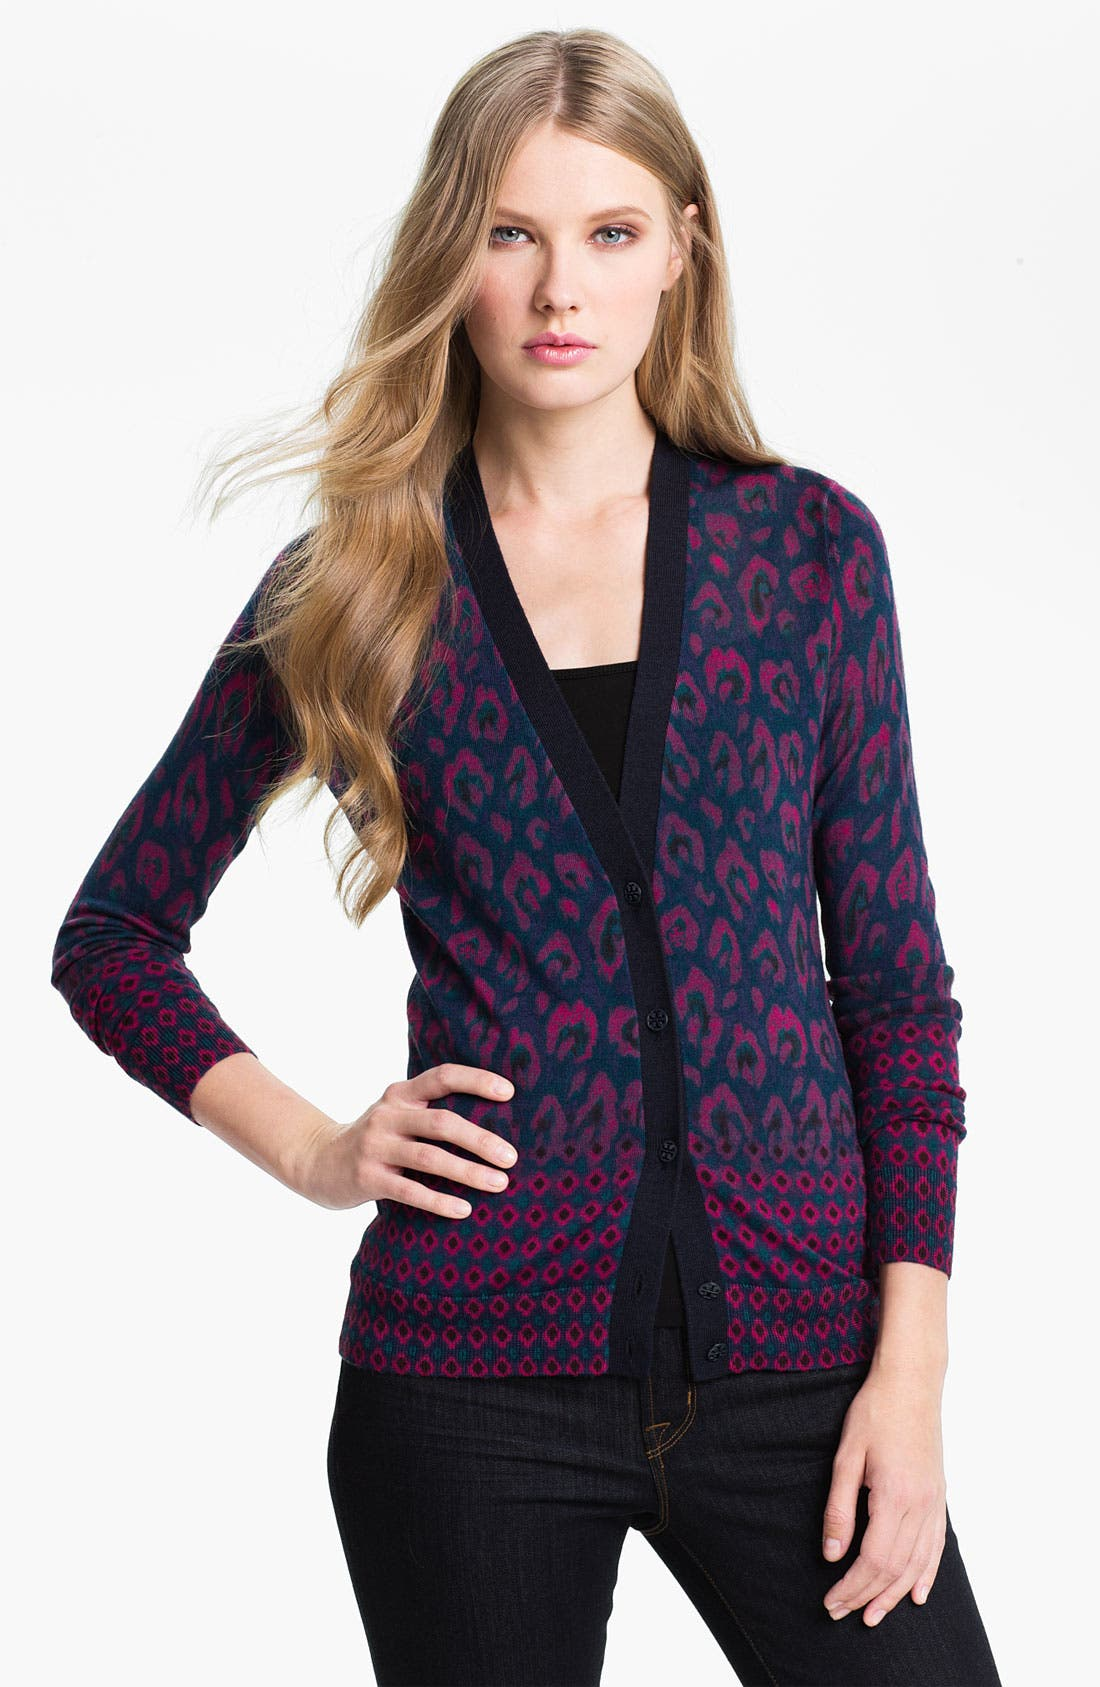 Alternate Image 1 Selected - Tory Burch 'Brady' Print Cardigan